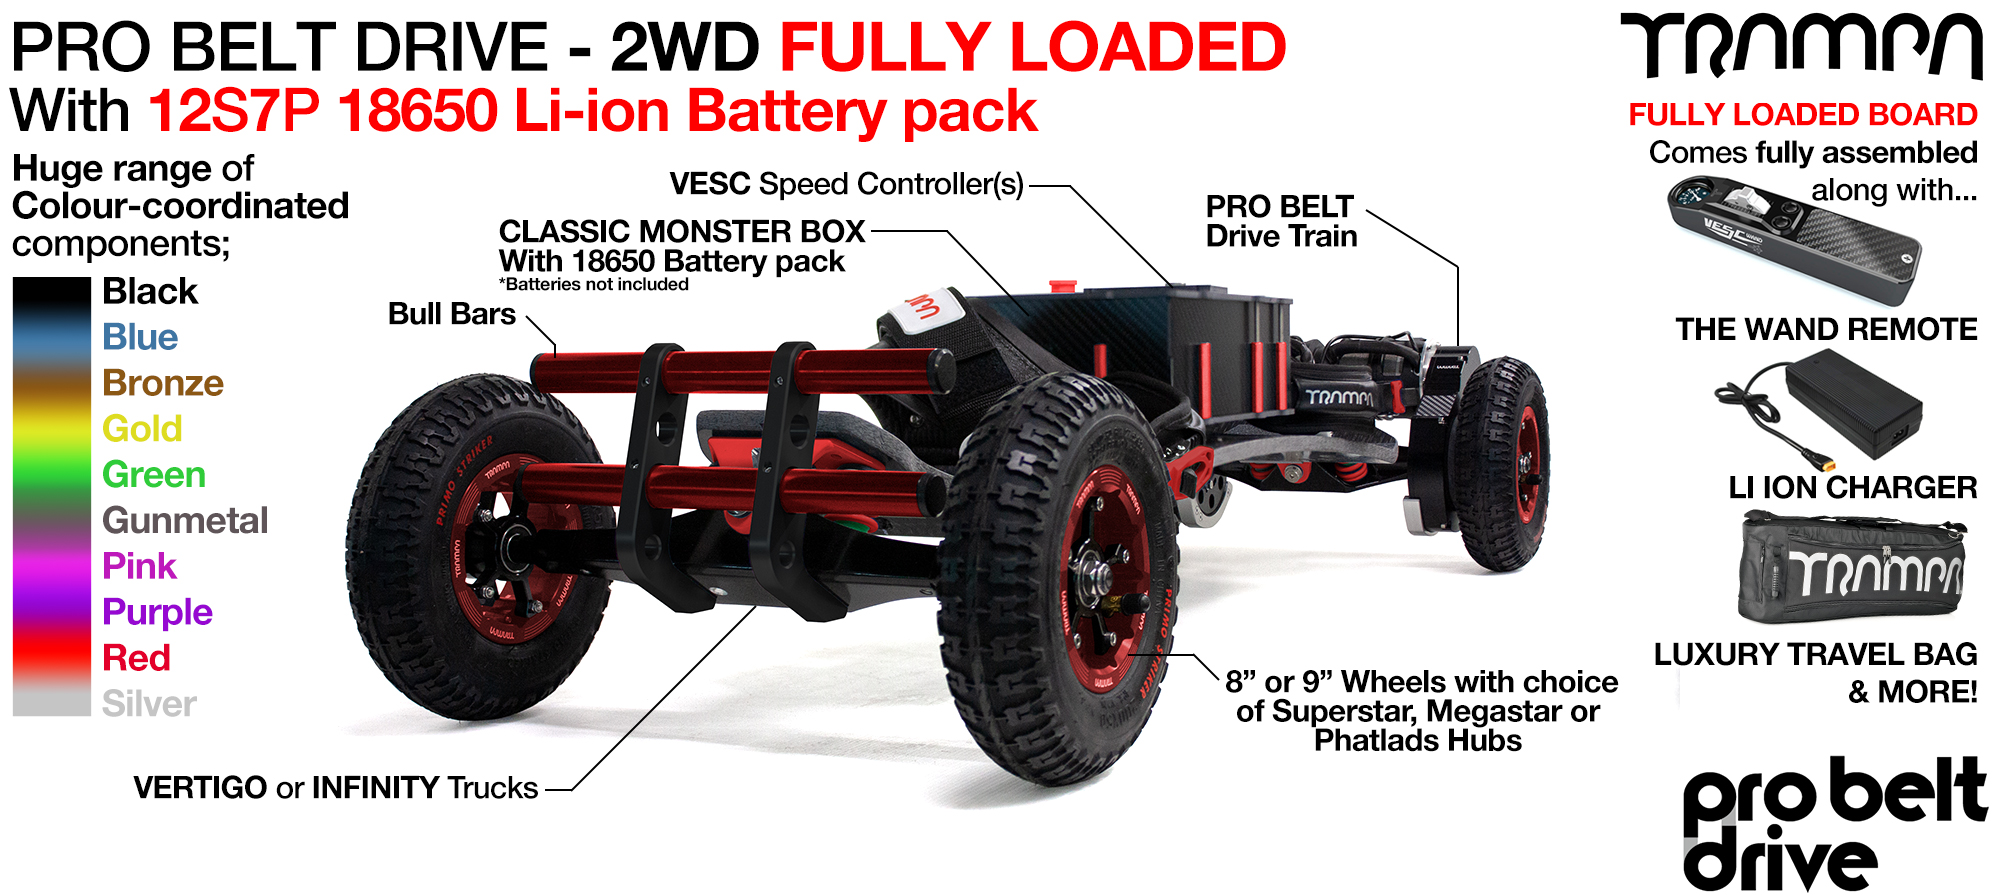 TRAMPA PRO Belt Drive Electric mountainboard FULLY LOADED - 18650 Cell Pack with The WAND, 12s Charger & Bull Bars as standard!!